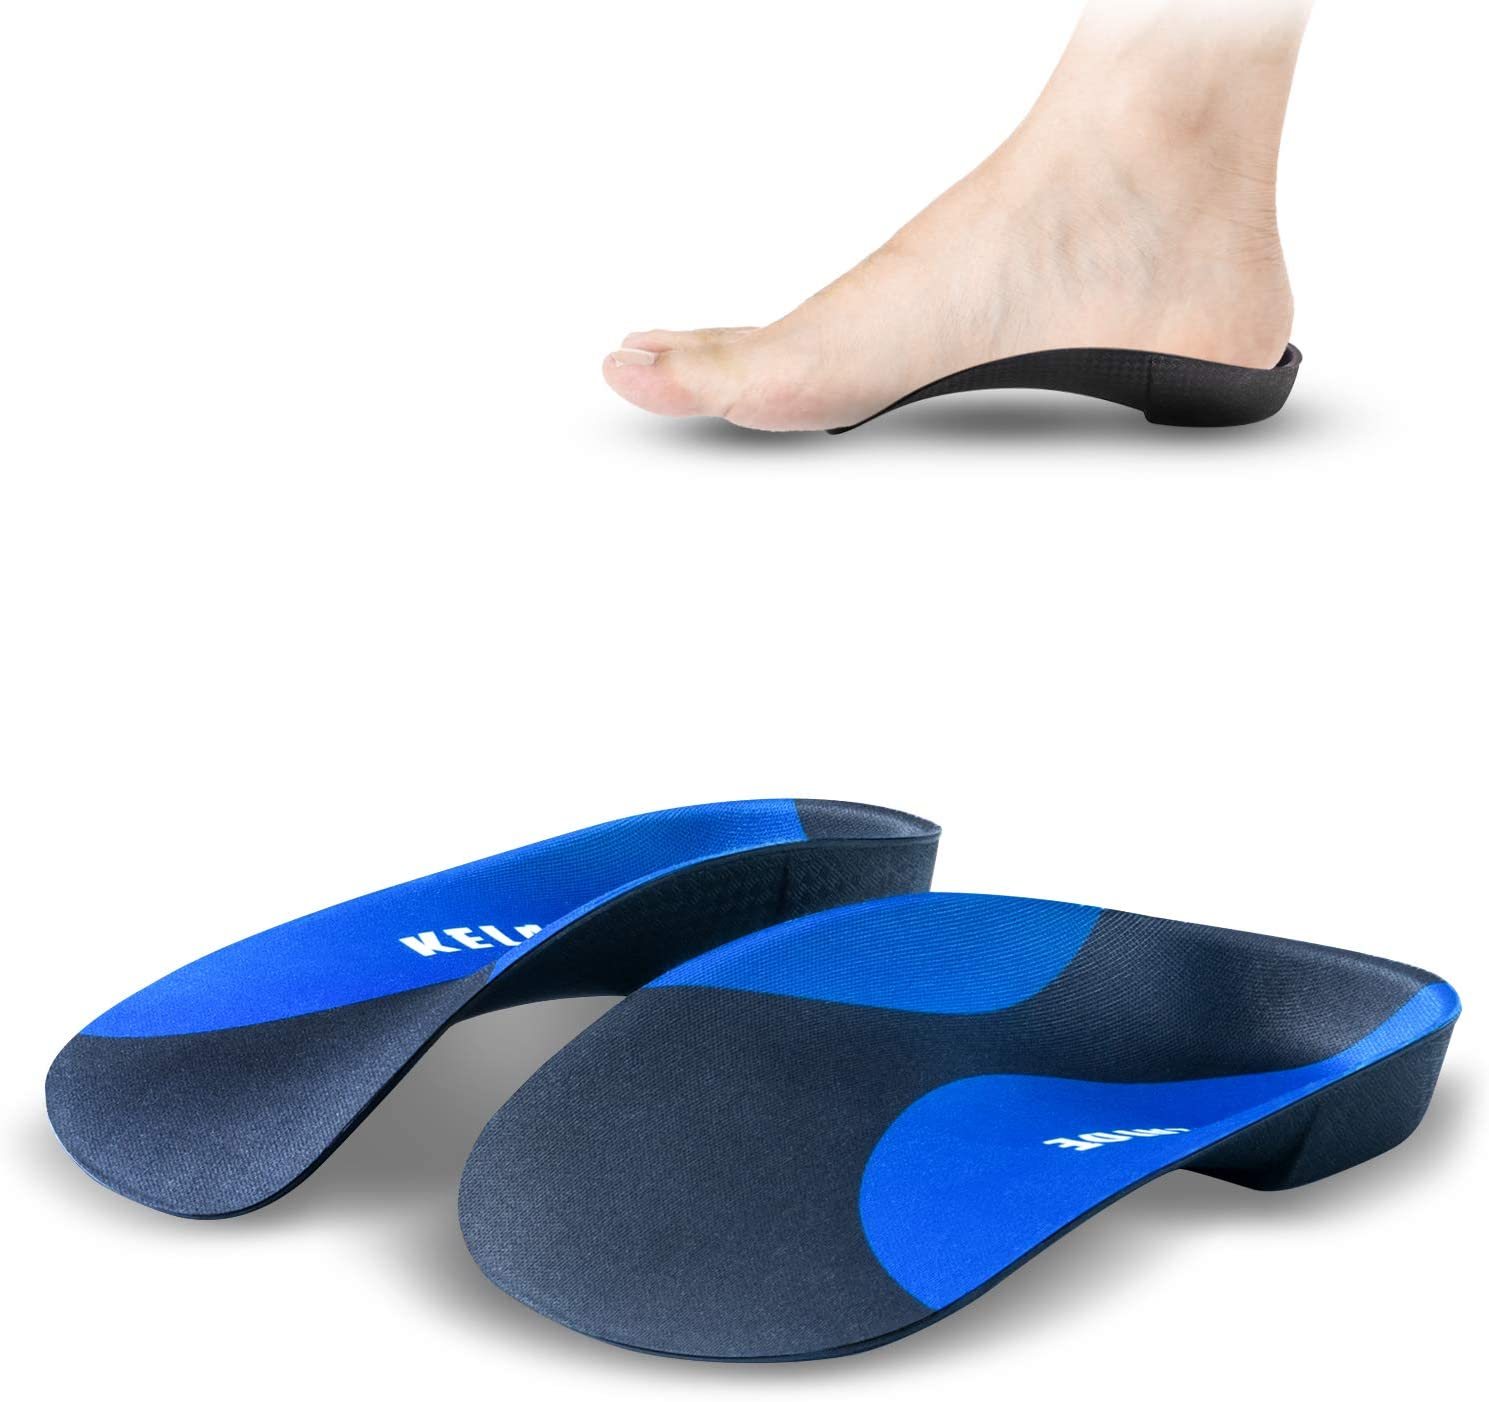 Plantar Fasciitis Arch Support Insoles for Men and Women Shoe Inserts - kelaide 3/4 Orthotics Insoles with Deep Heel Cup - Firm Arch Support Inserts for Flat Feet Arch Pain Work Shoes Boots